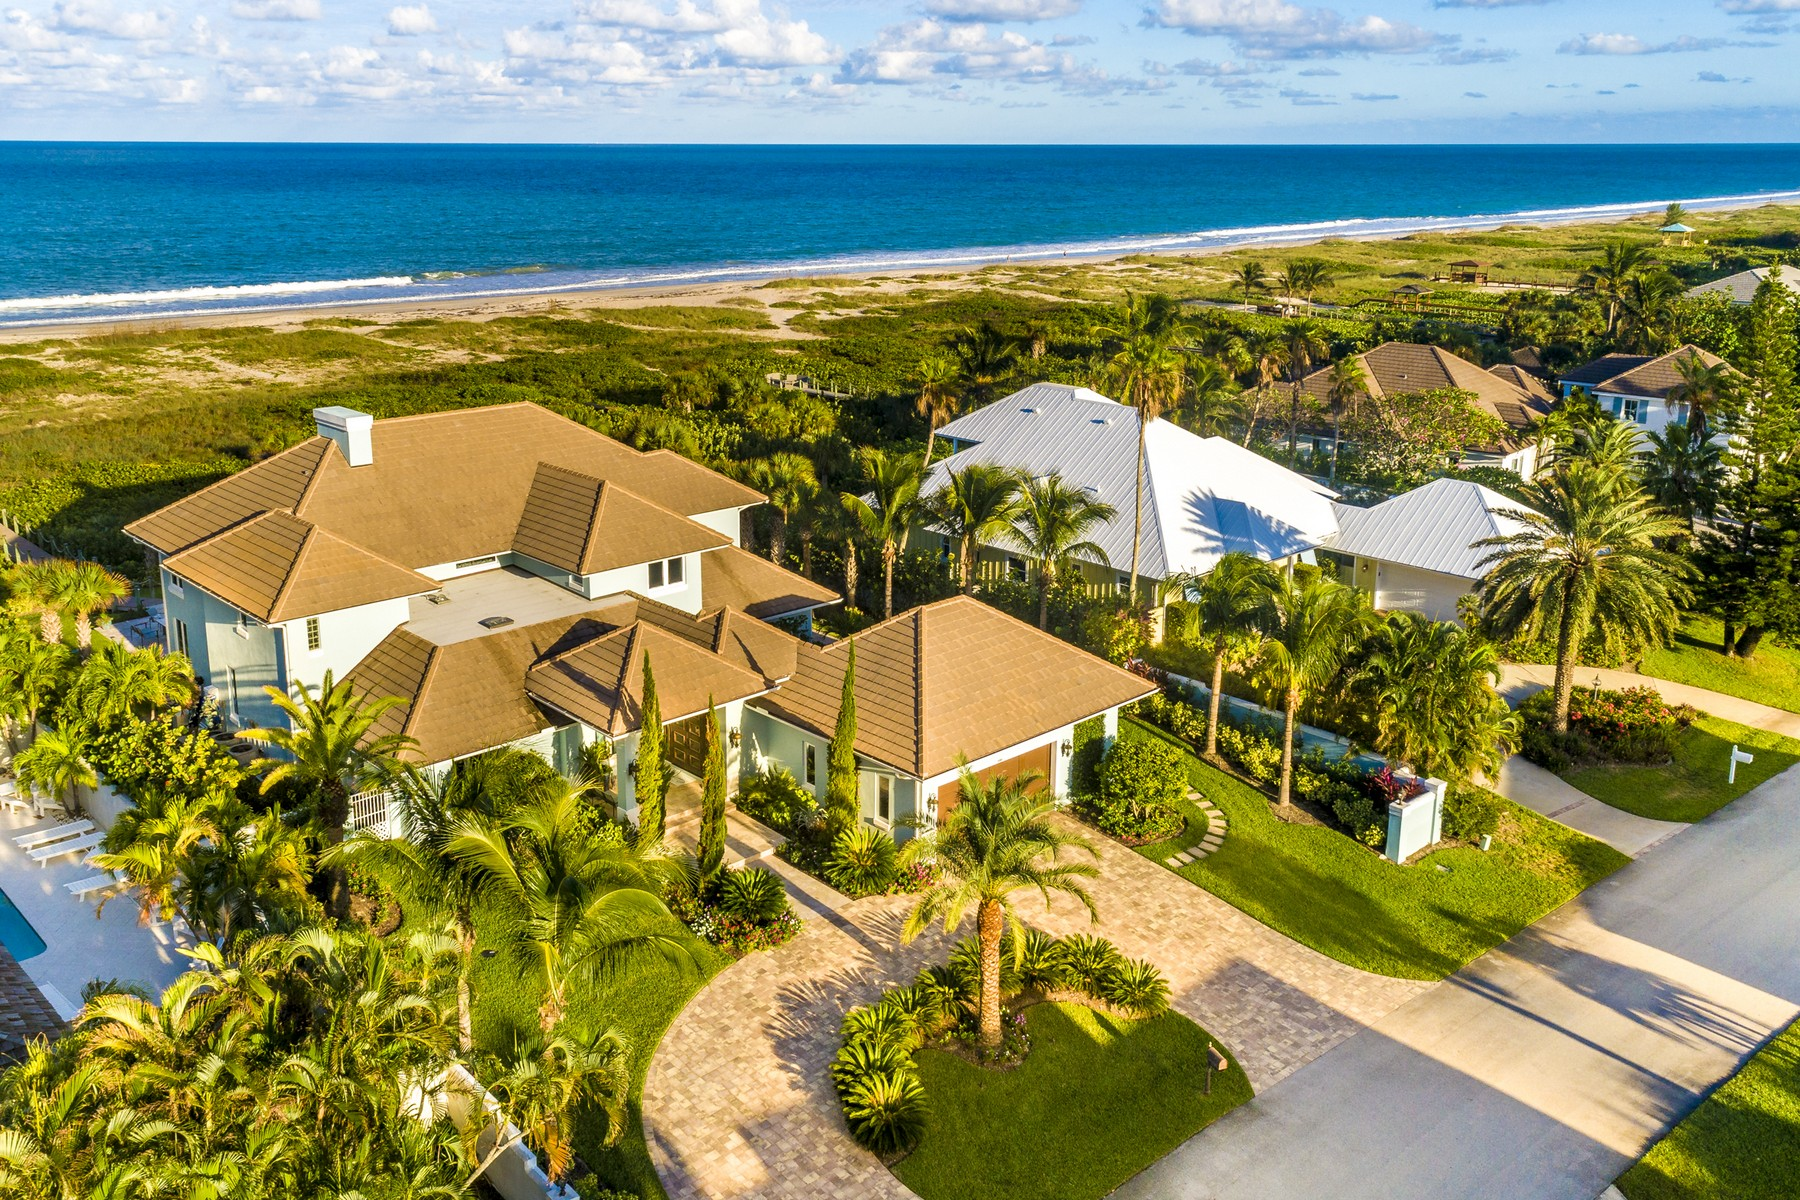 Single Family Homes for Sale at Stunning Oceanfront Estate 1240 Olde Doubloon Drive Vero Beach, Florida 32963 United States